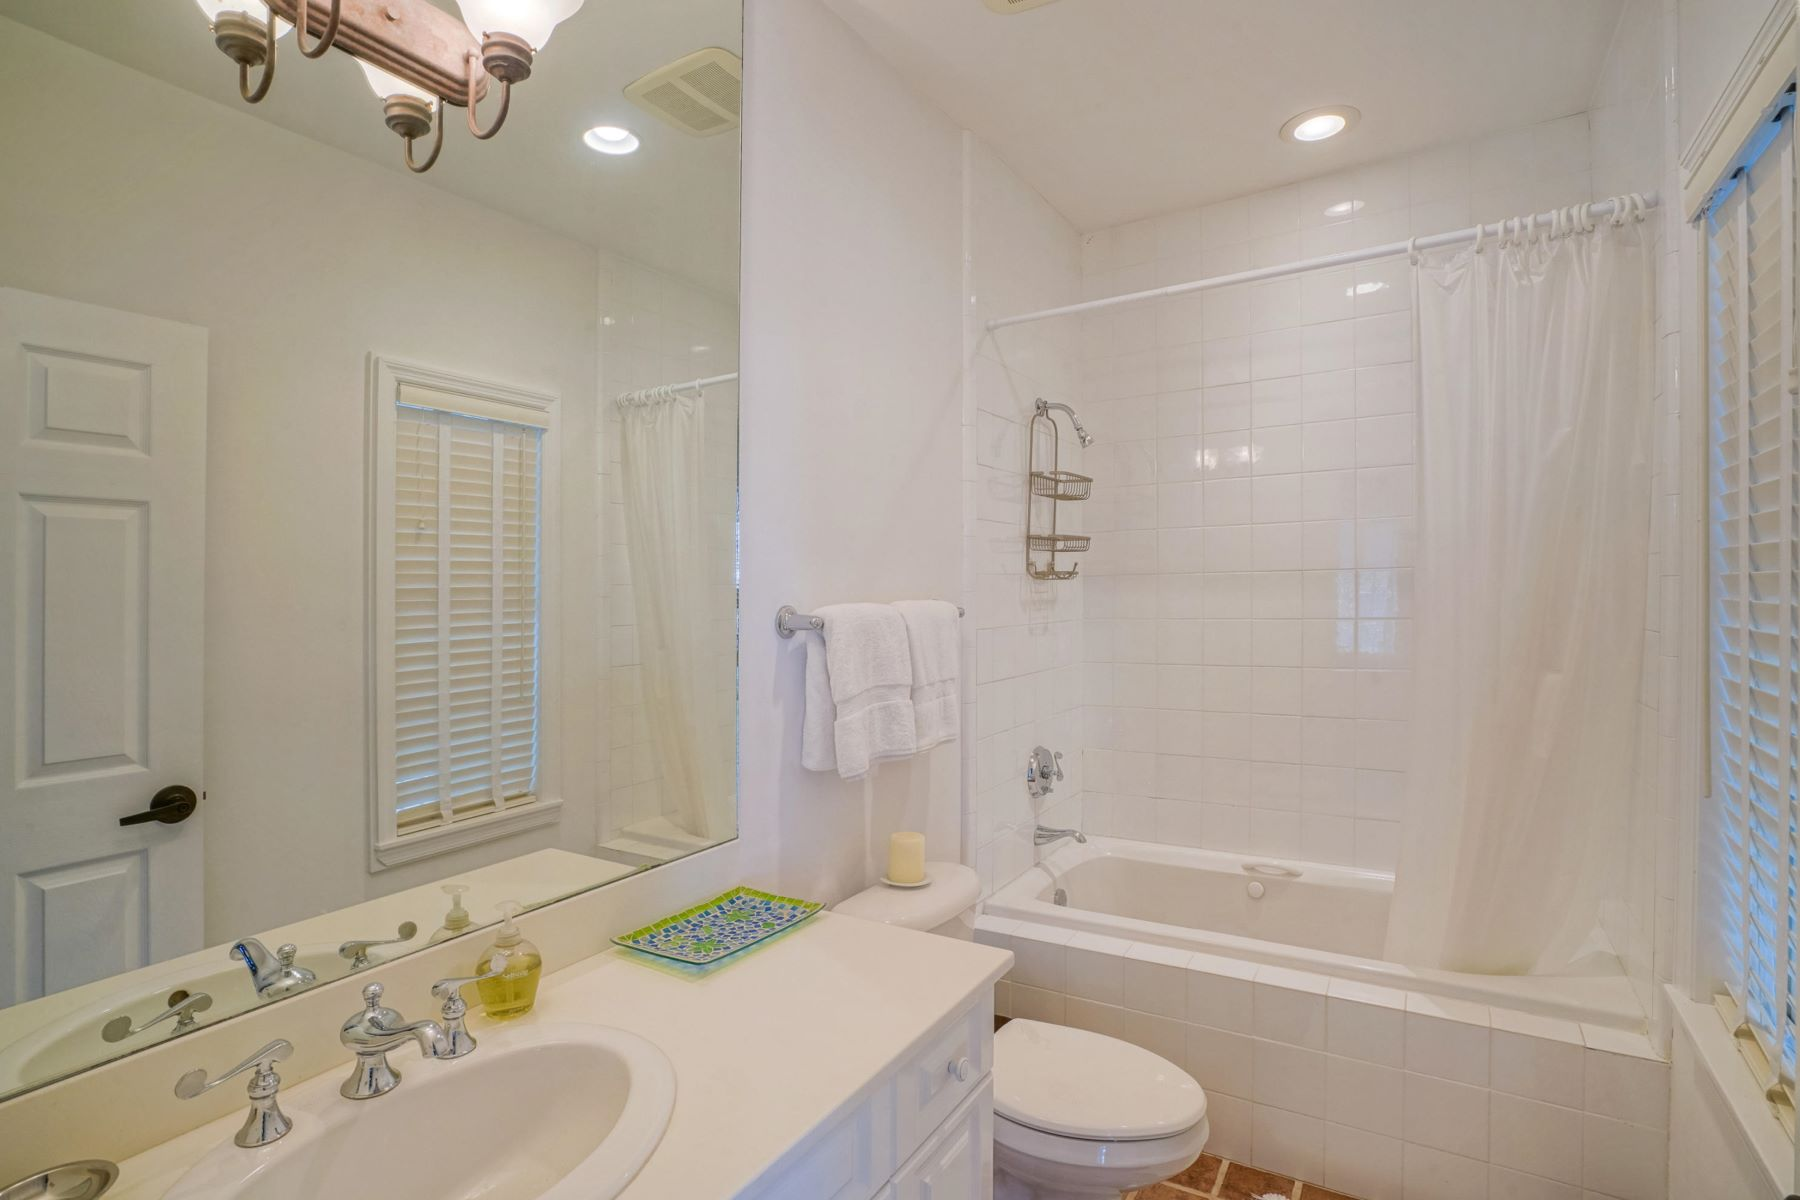 Additional photo for property listing at 61 Sunset Key Drive, Key West, FL  Key West, Florida 33040 United States